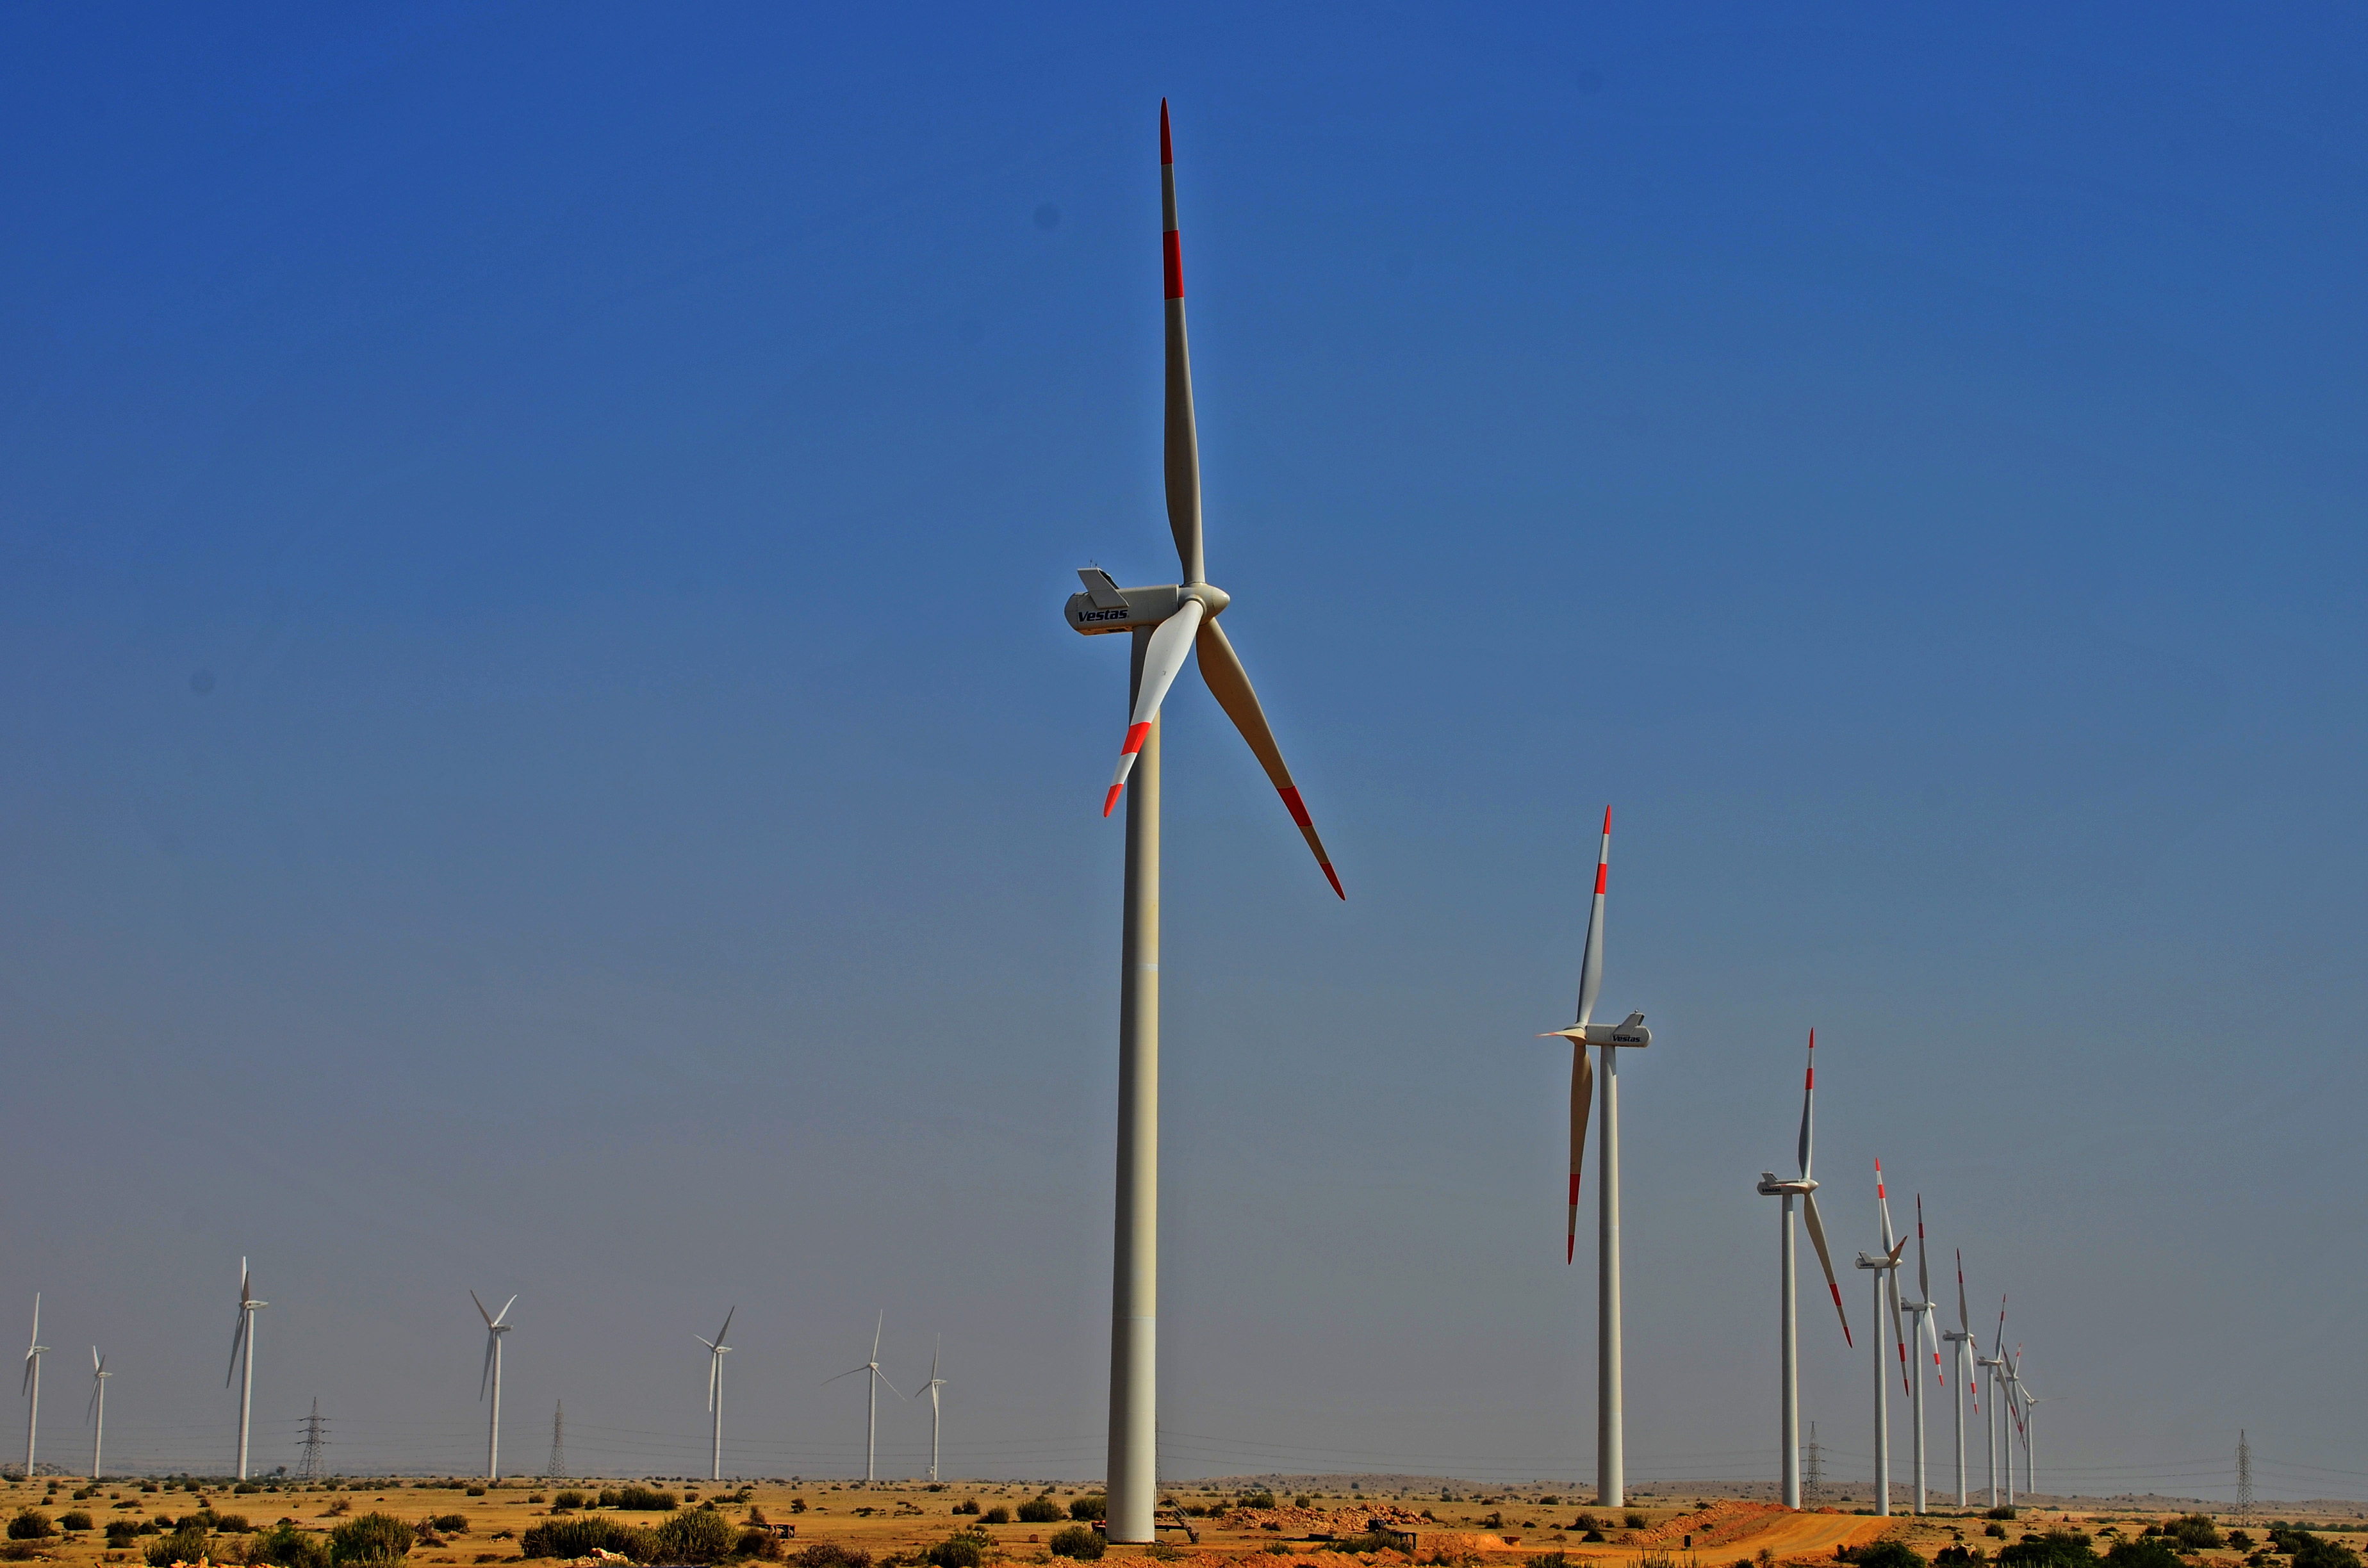 40 companies actively engaged to produce 3000 MW electricity from Wind ...